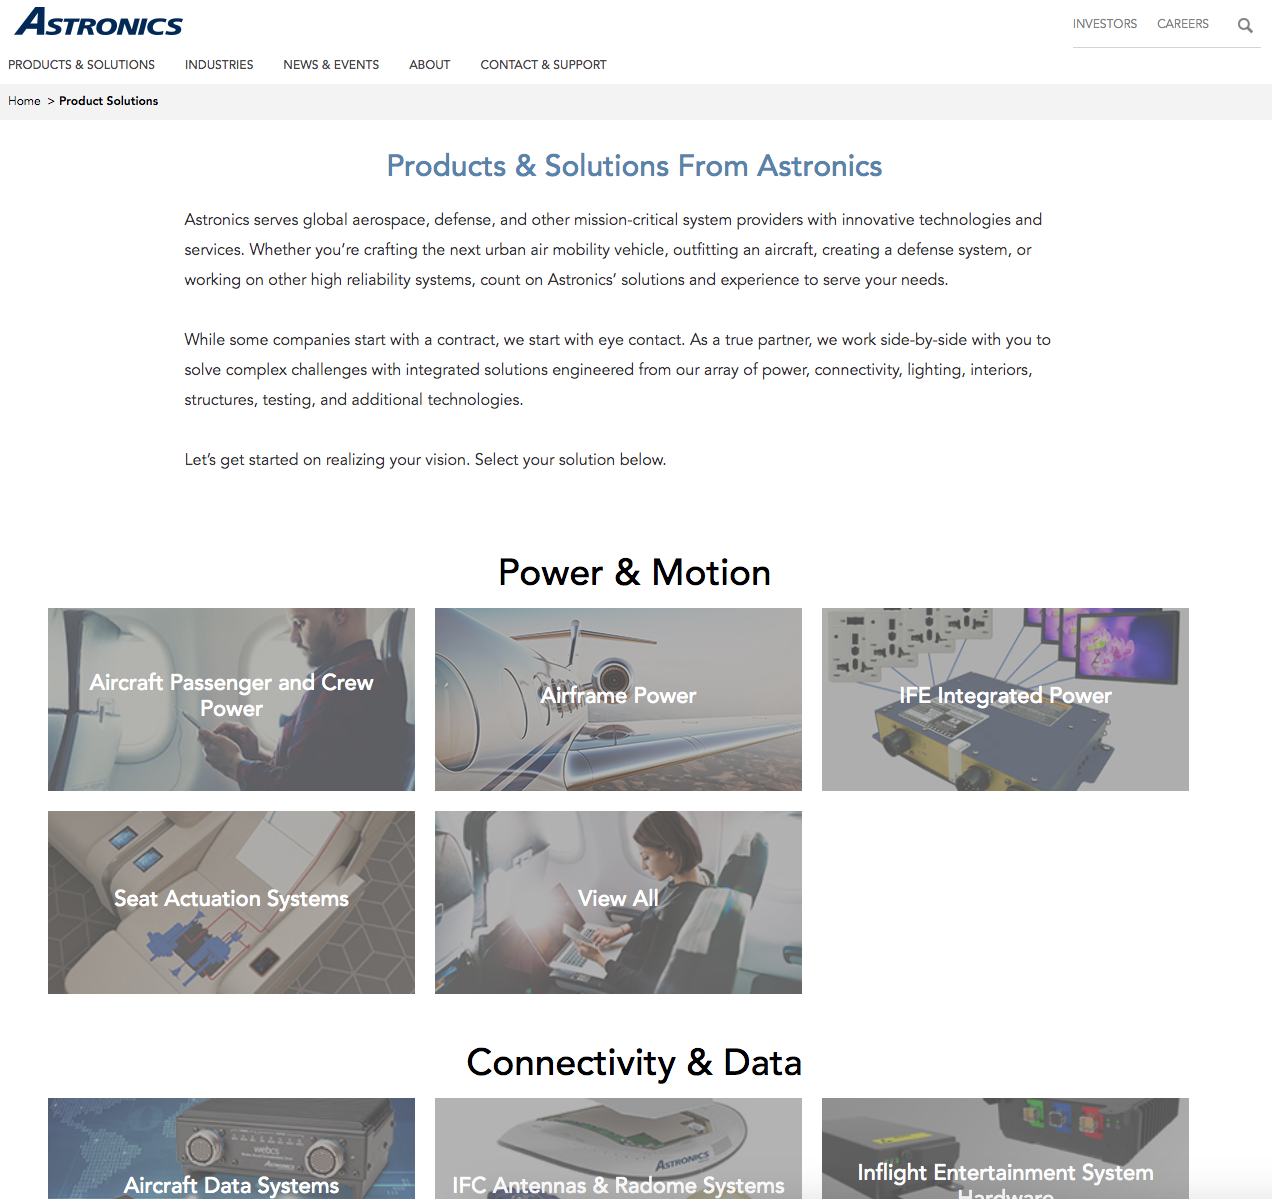 Product & Solutions selection page